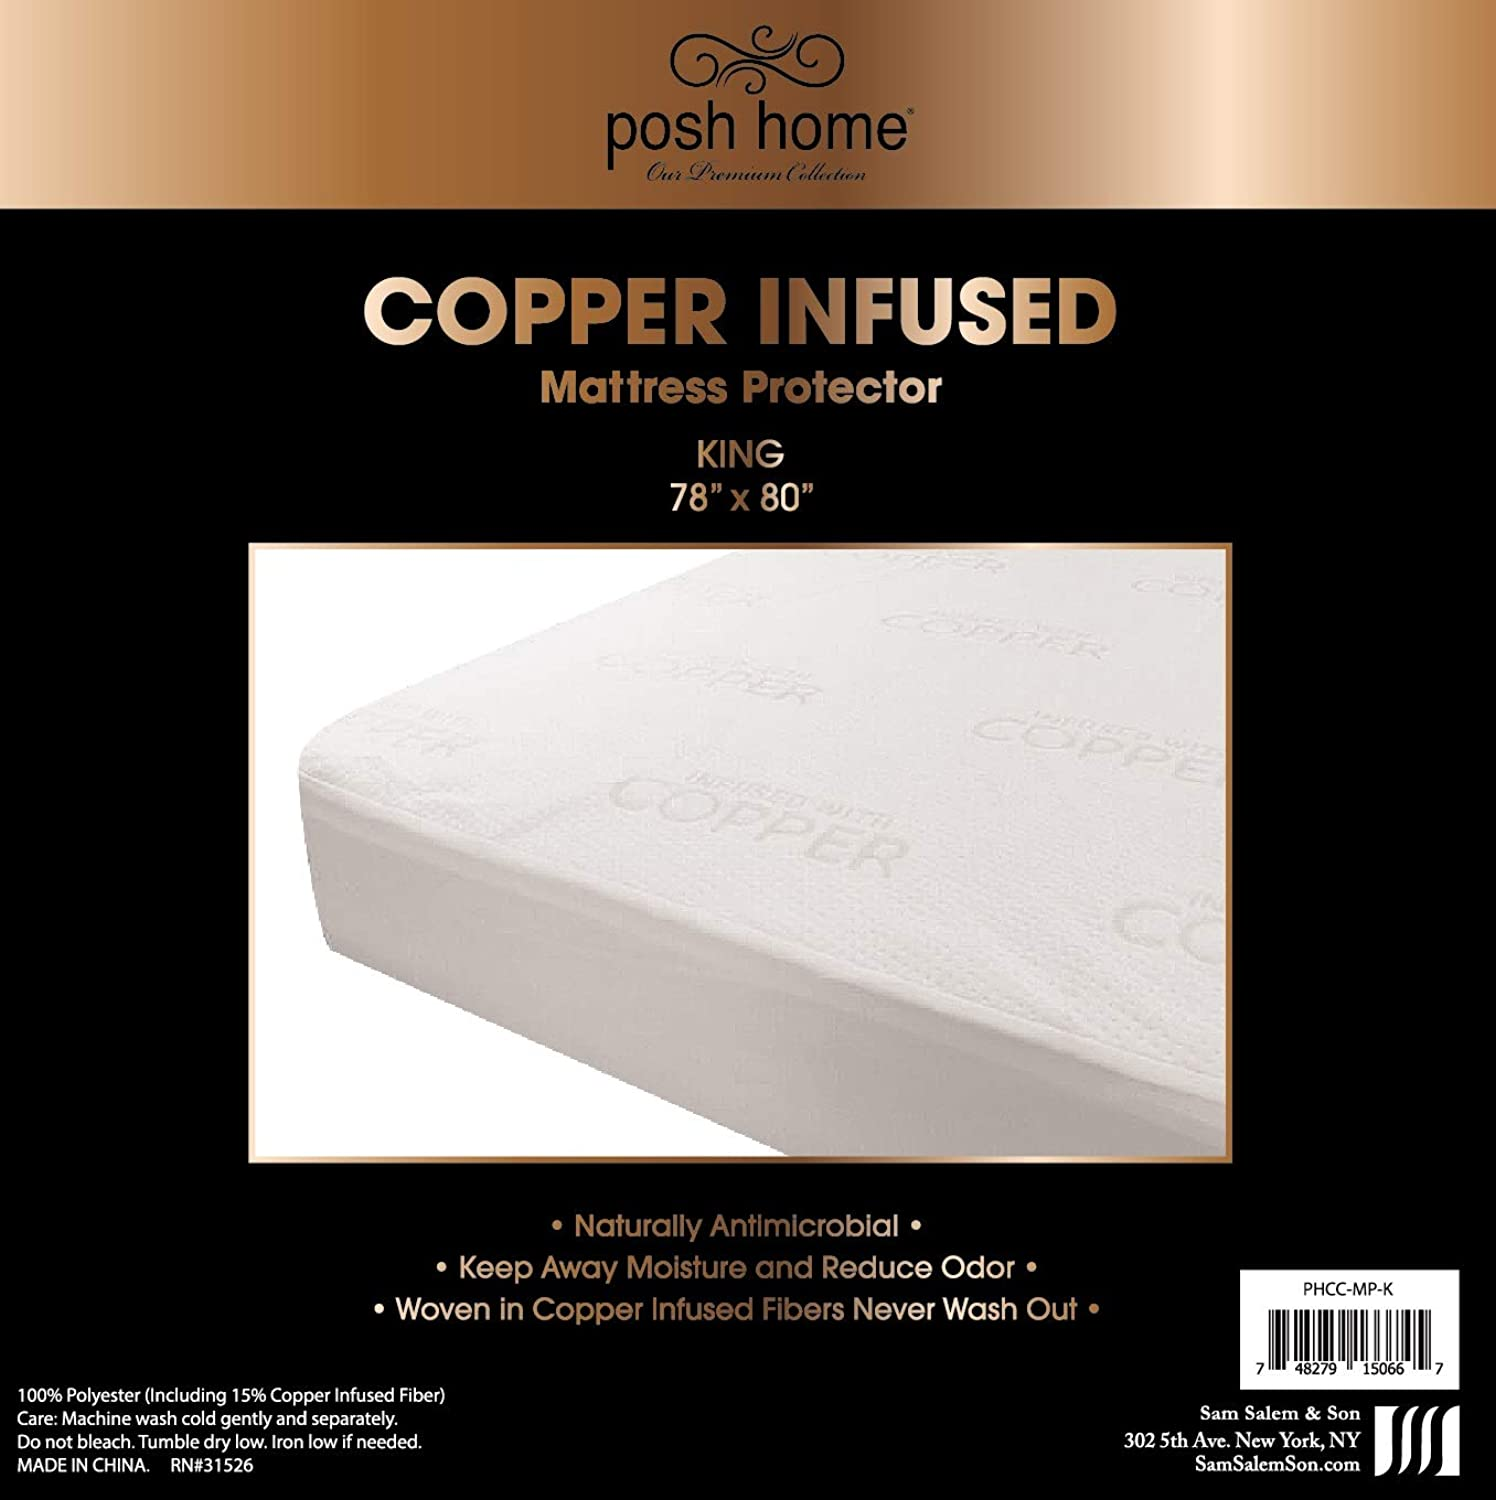 Posh Home Copper Infused Breathable Cool Soft Antibacterial Fresh Mattress Predector King Size, Natural